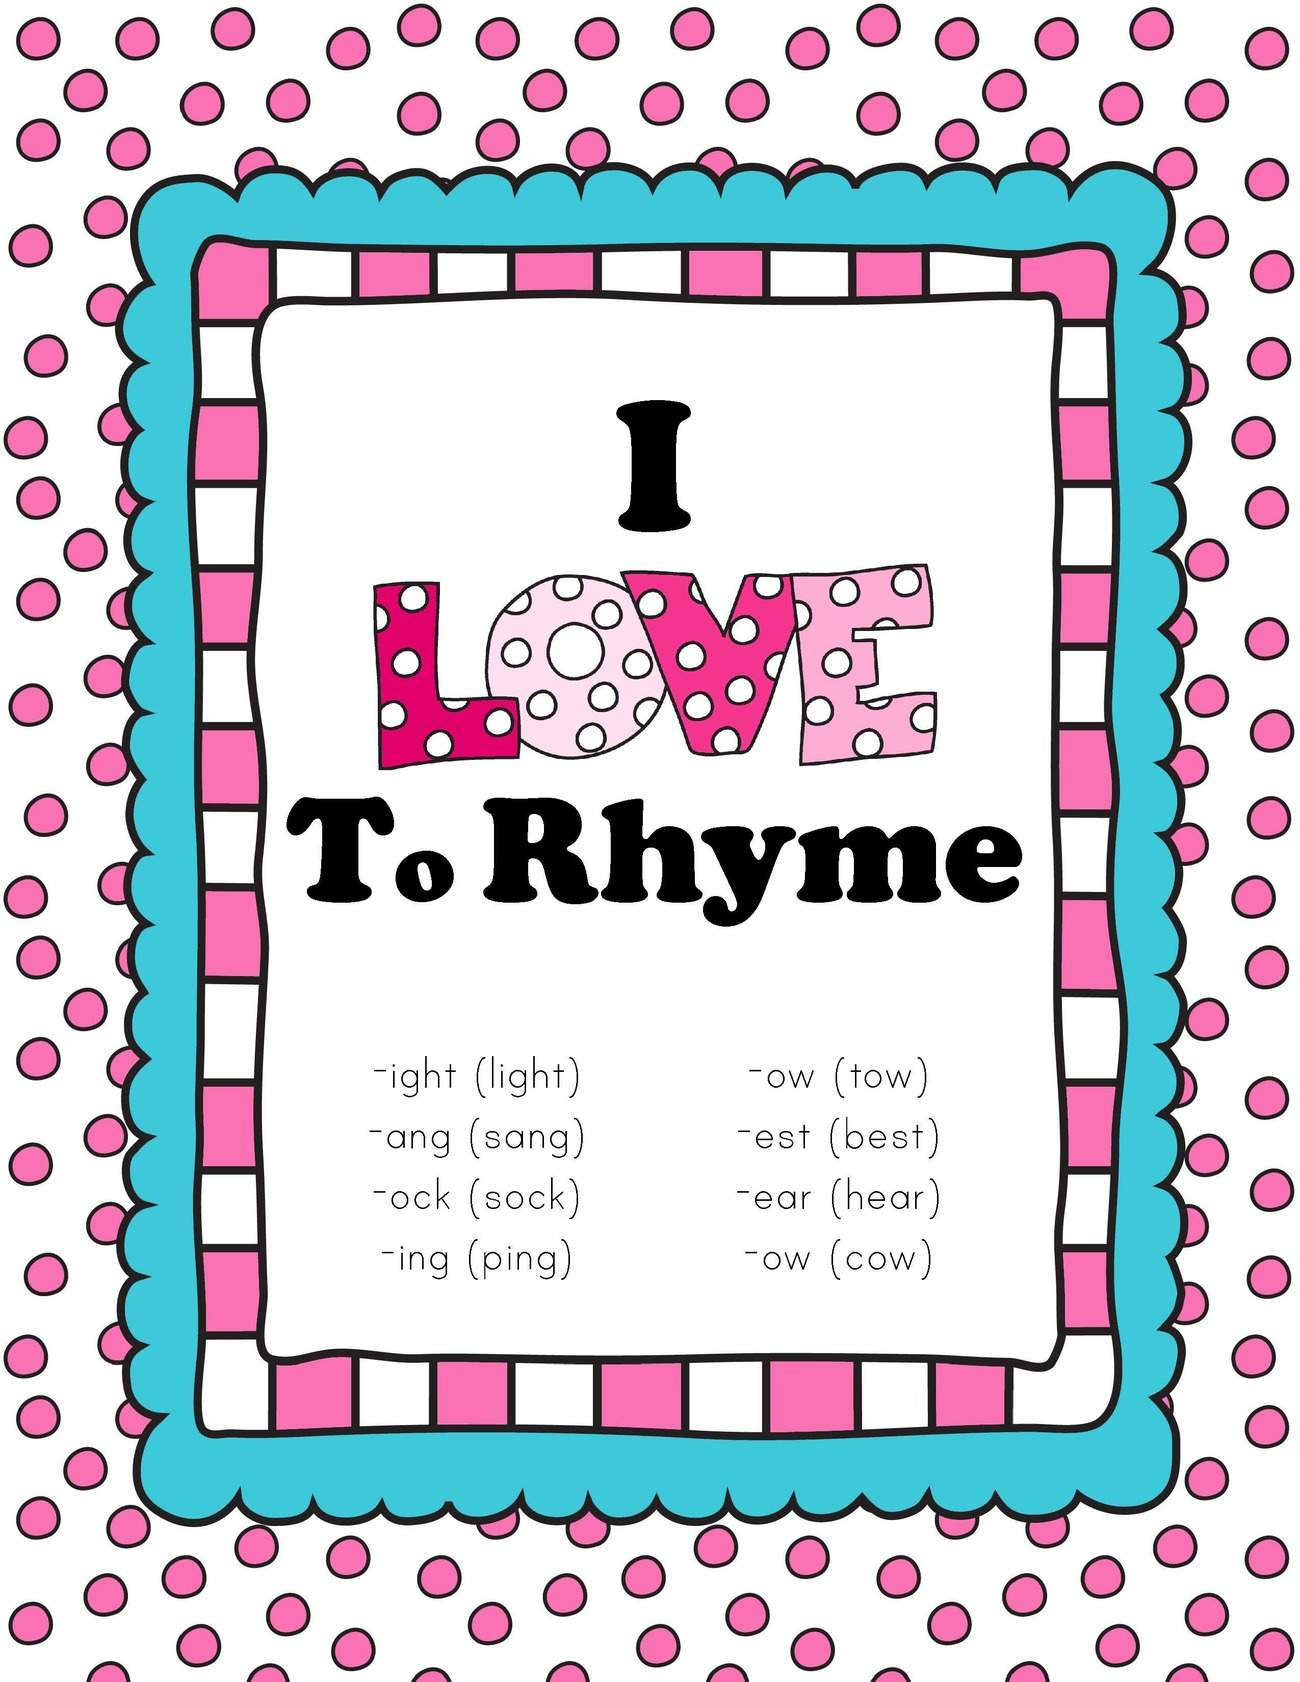 Worksheet Rythming valentines day themed rhyming pack only passionate curiosity download the love to rhyme read and sort in our shop